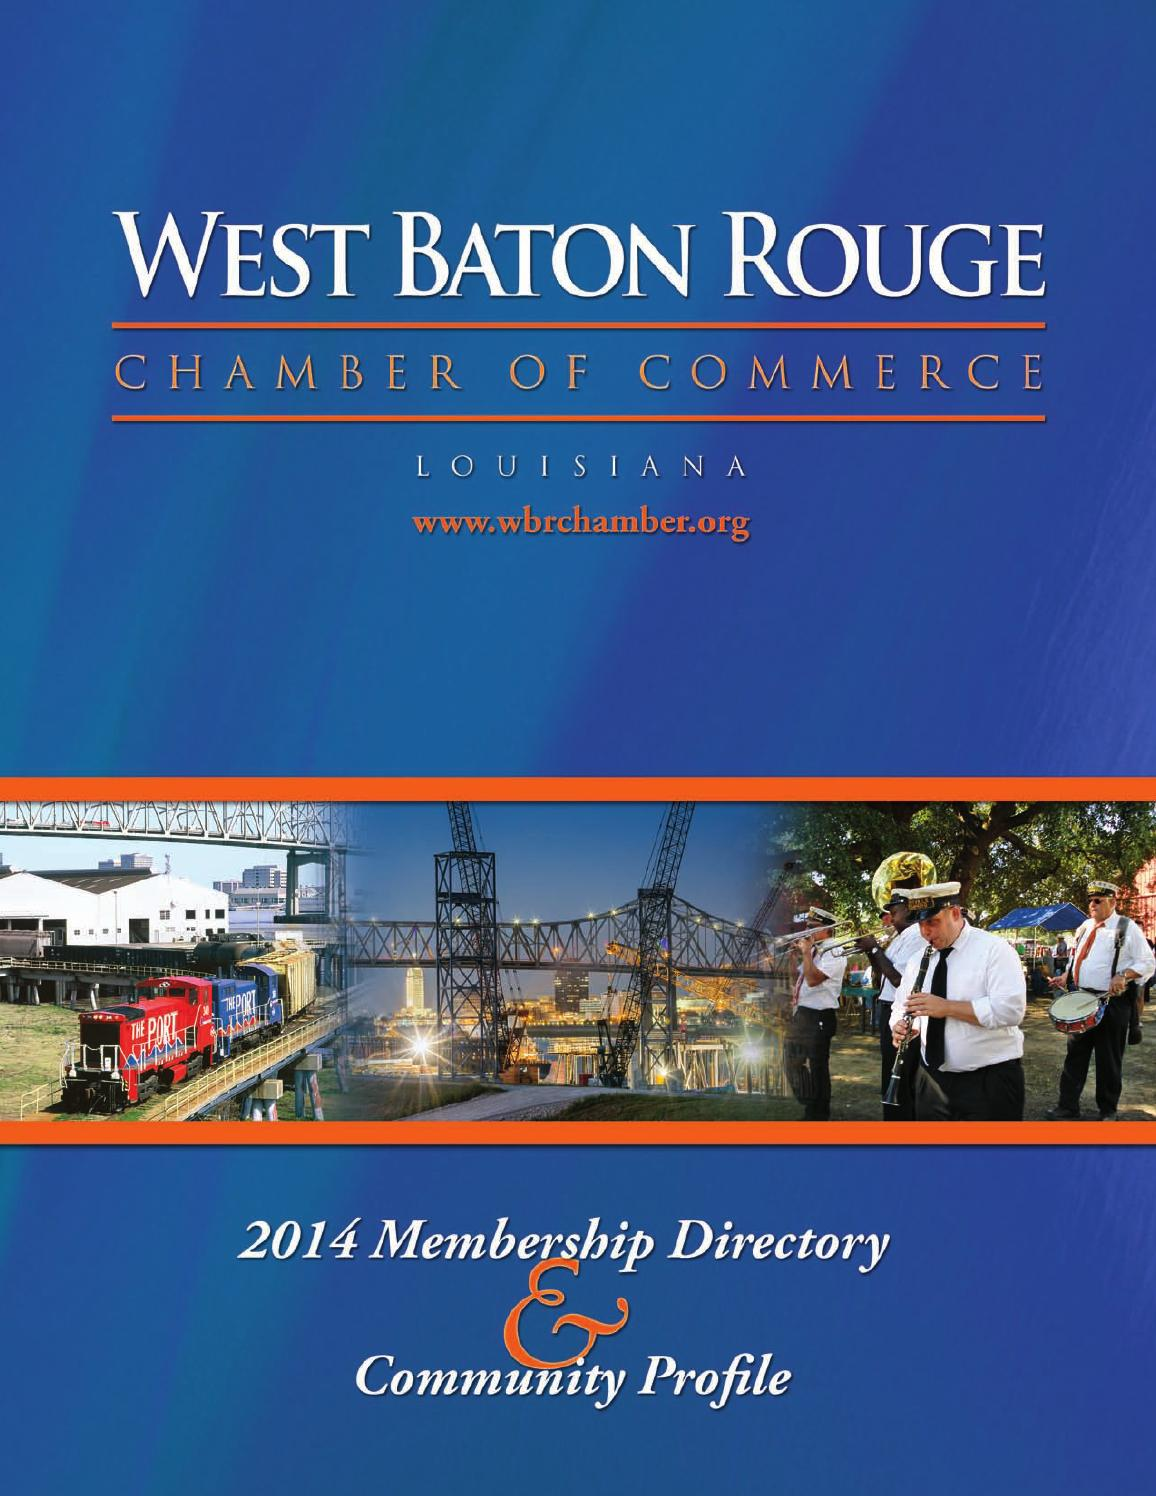 West Baton Rouge LA Community Profile by Townsquare